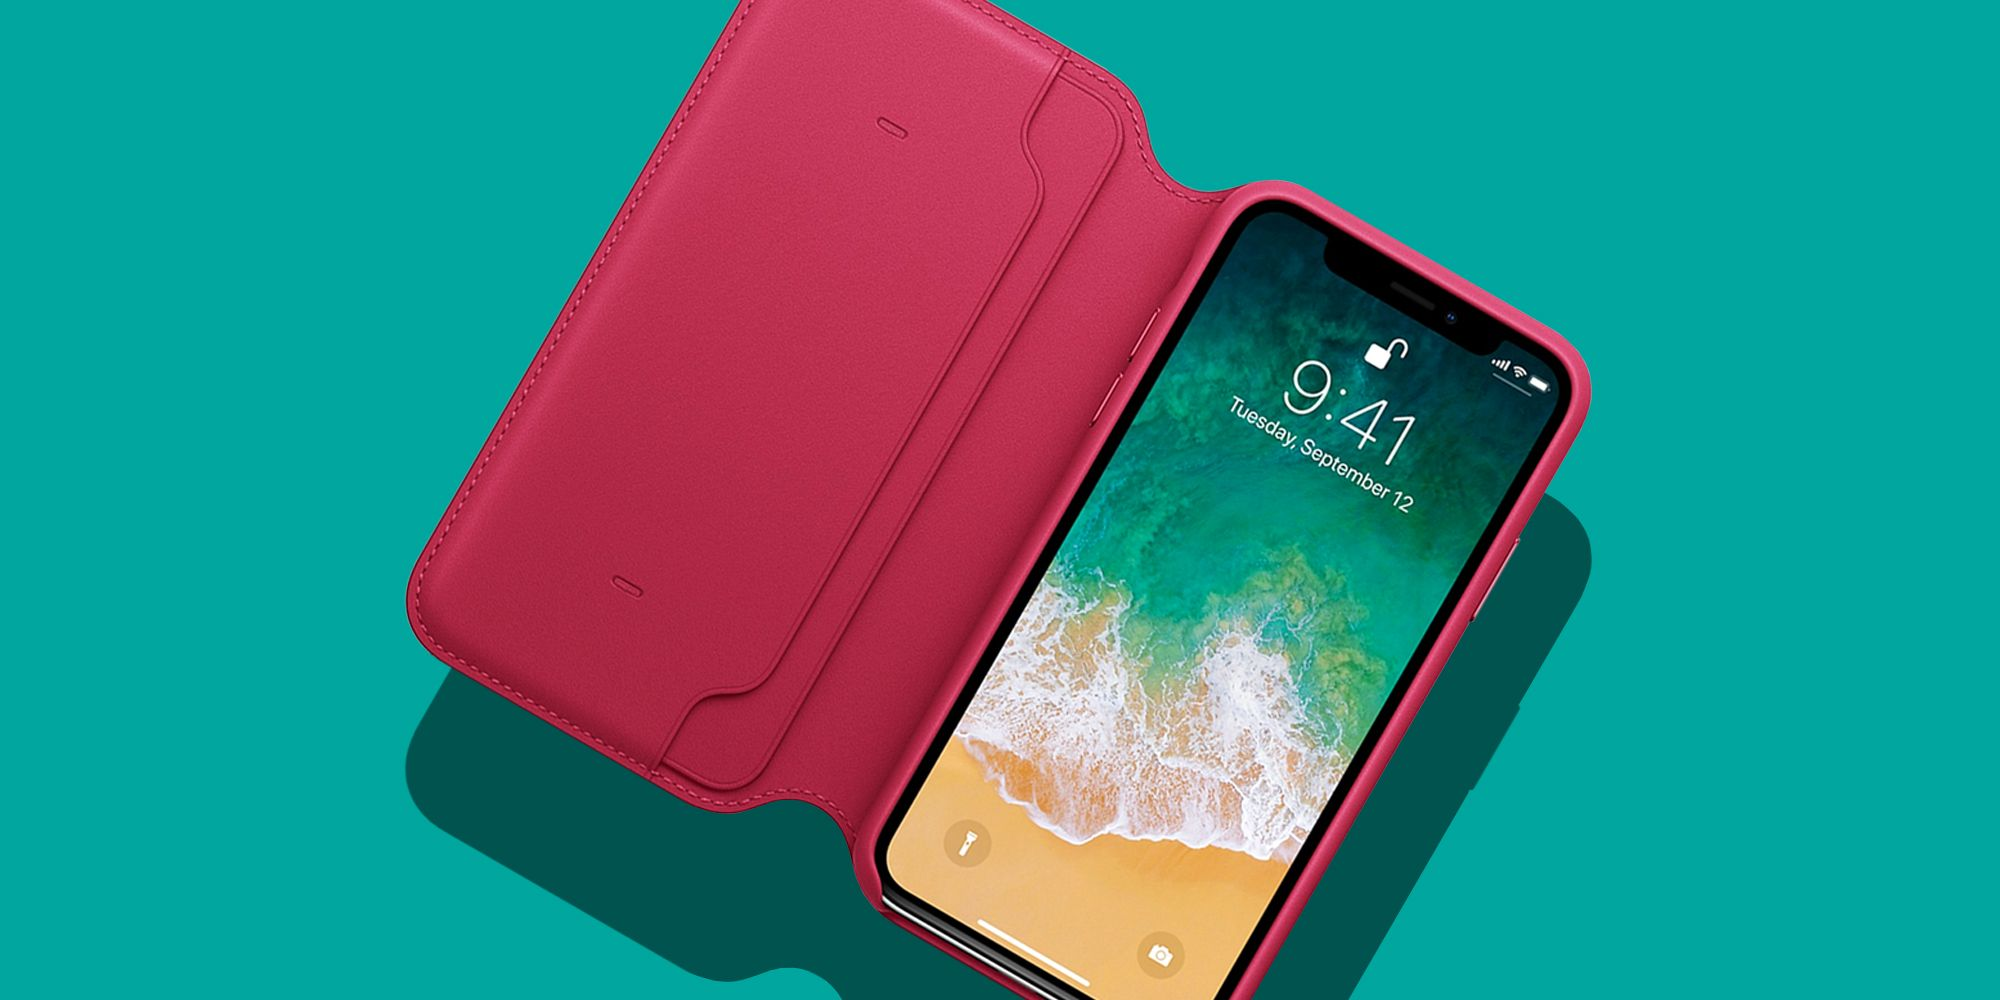 10 Best Iphone Xs Cases Of 2018 Protective For X Spigen Case Air Skin Black